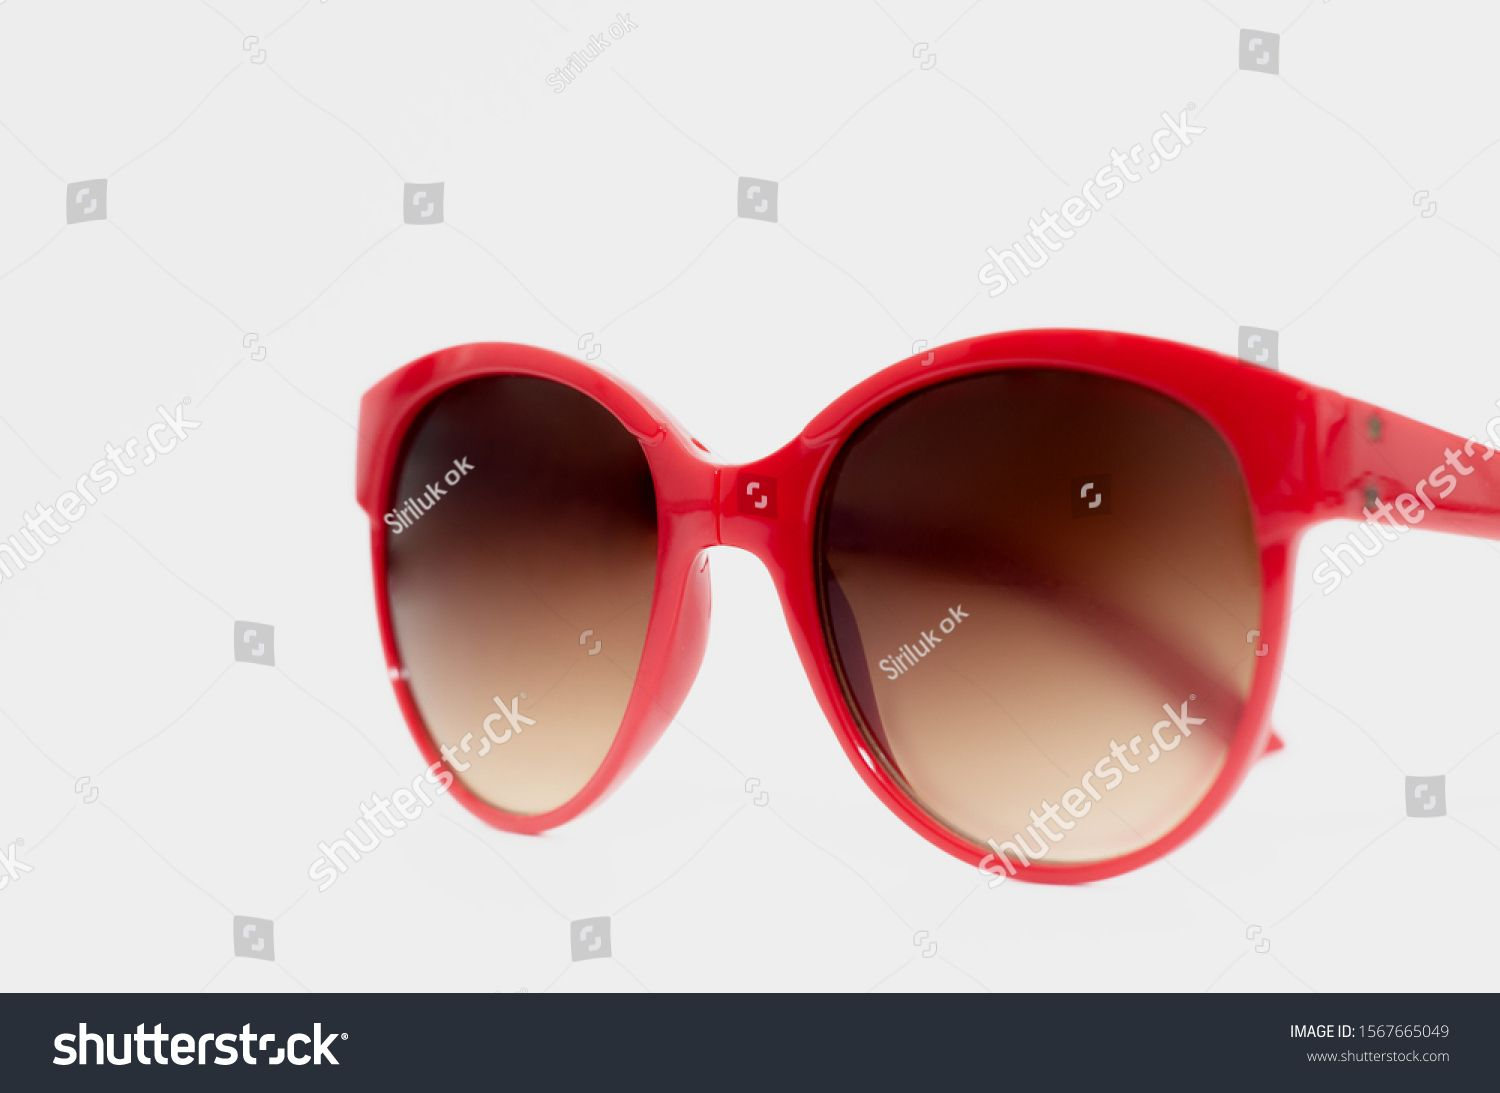 Red sunglasses isolated on a white backgroundCopy space